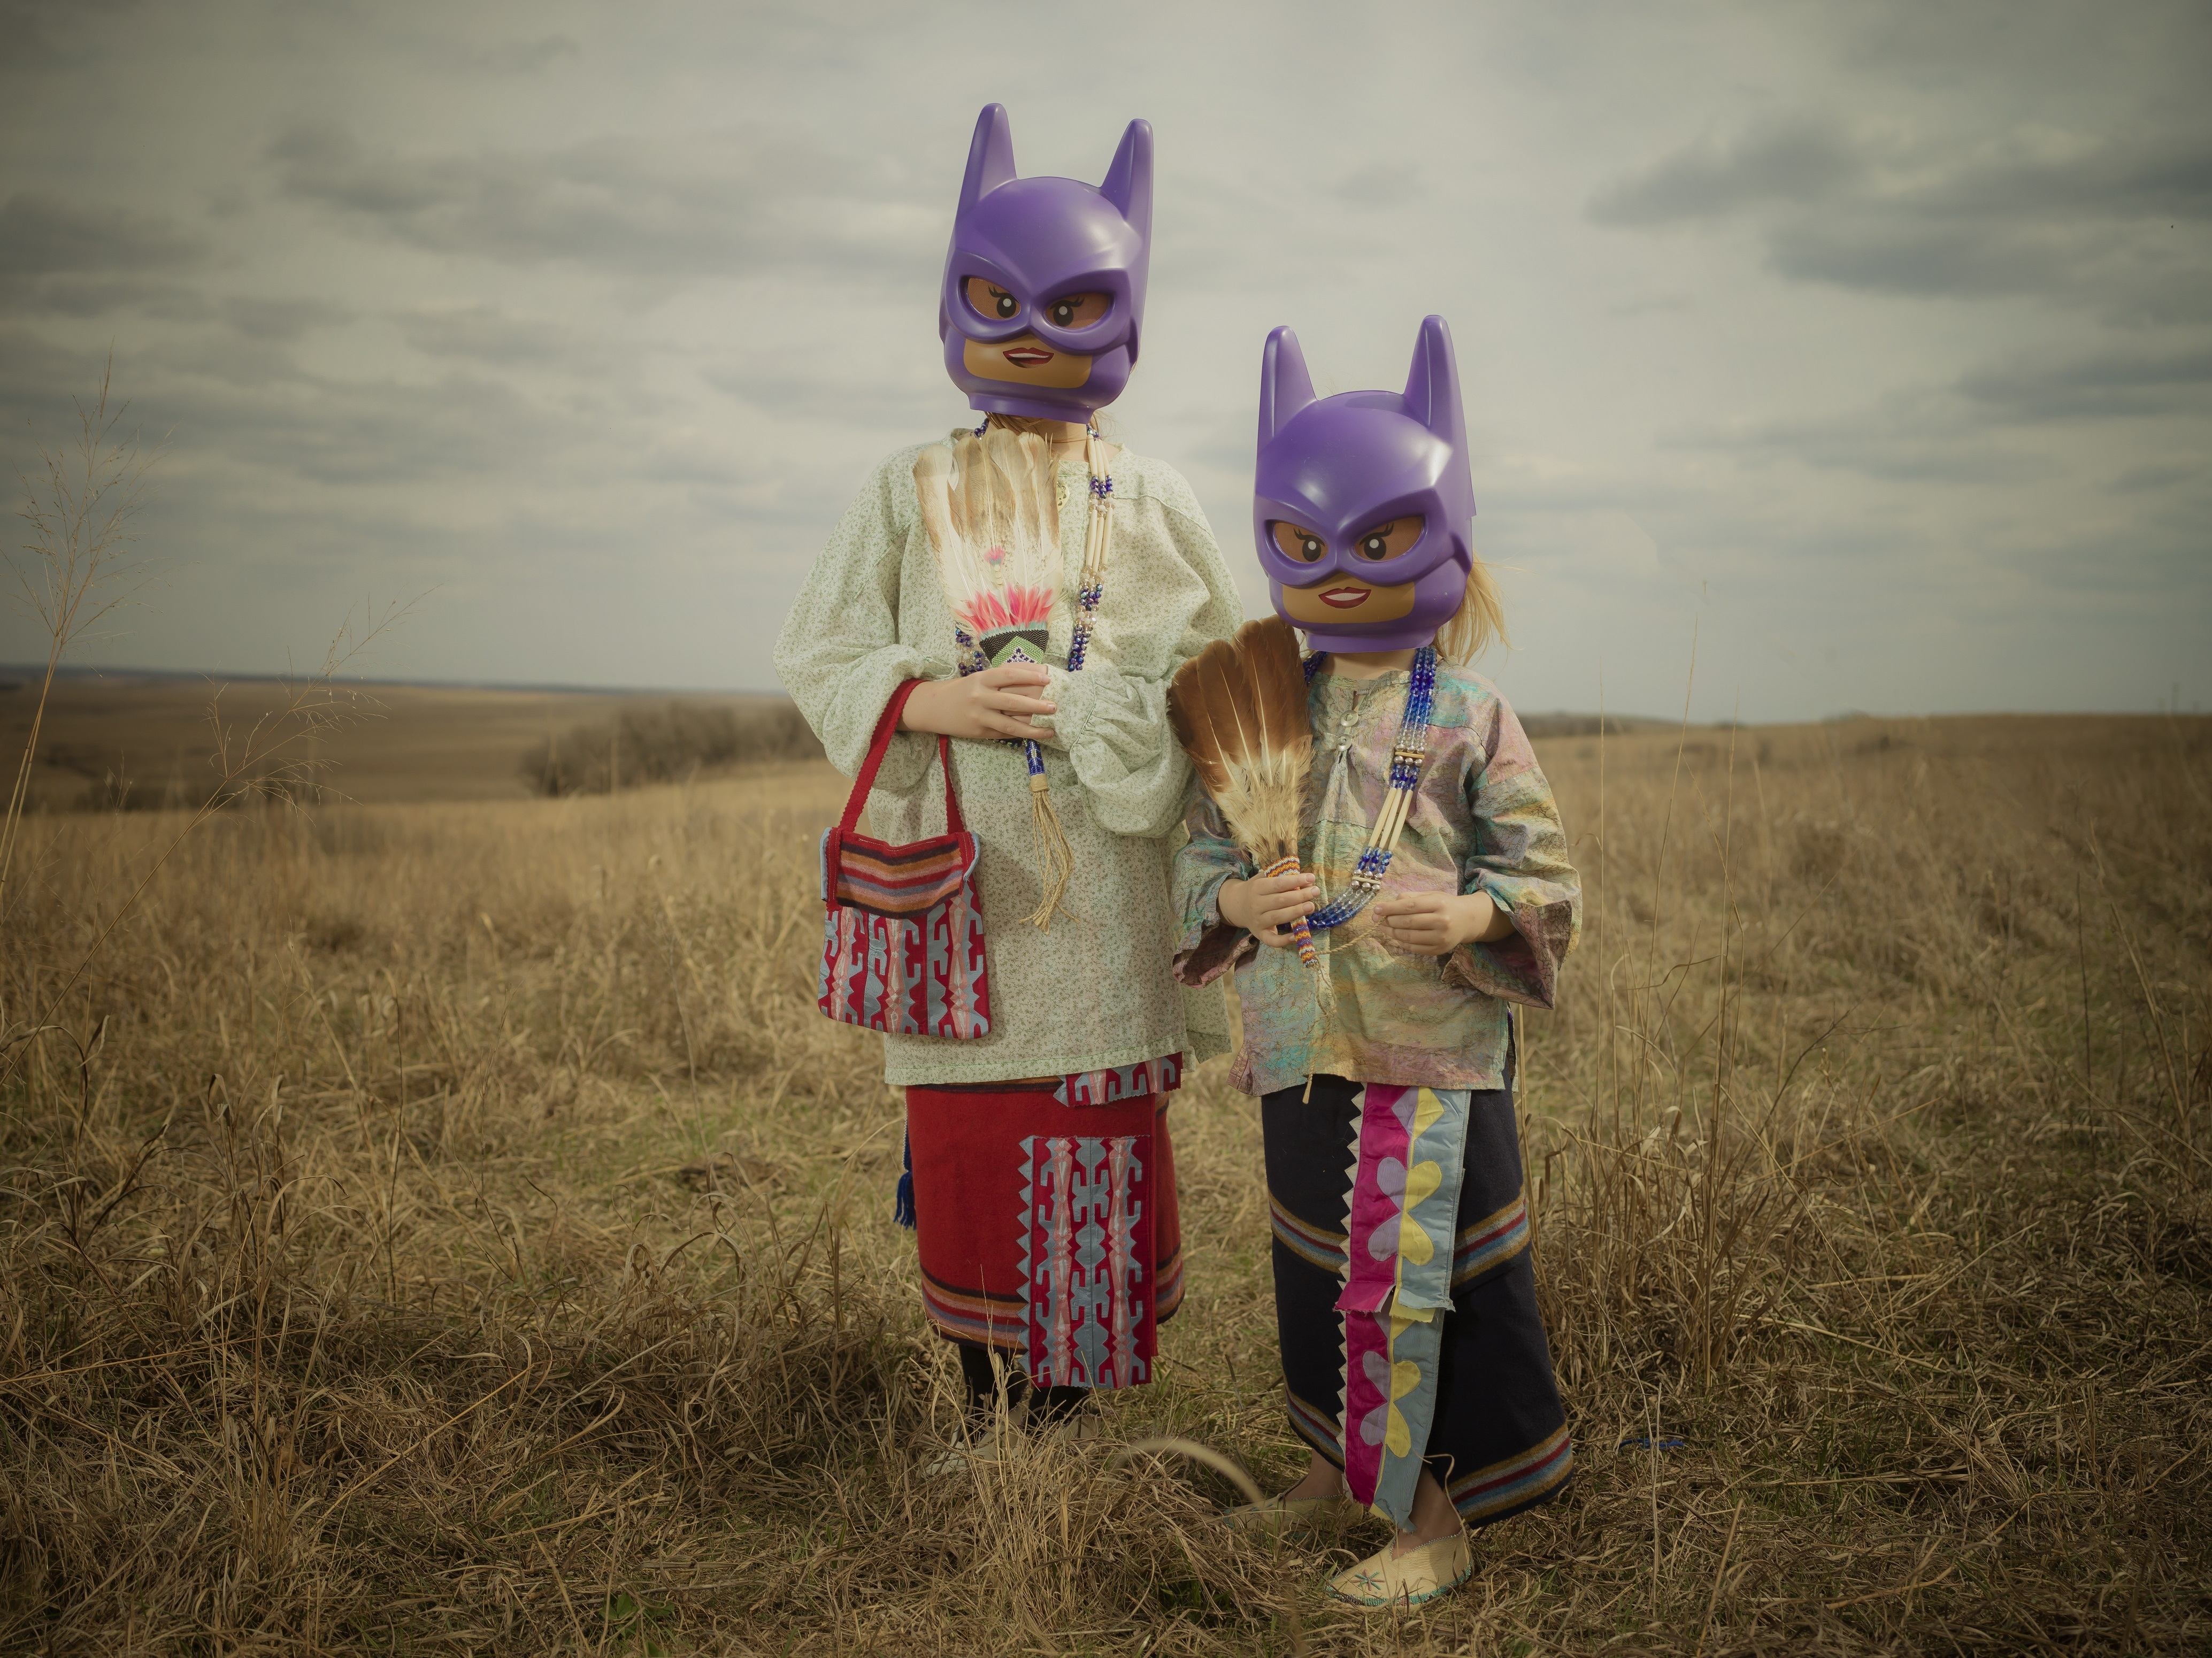 A photograph depicts two children wearing Native regalia and purple Bat Girl masks on an open prairie